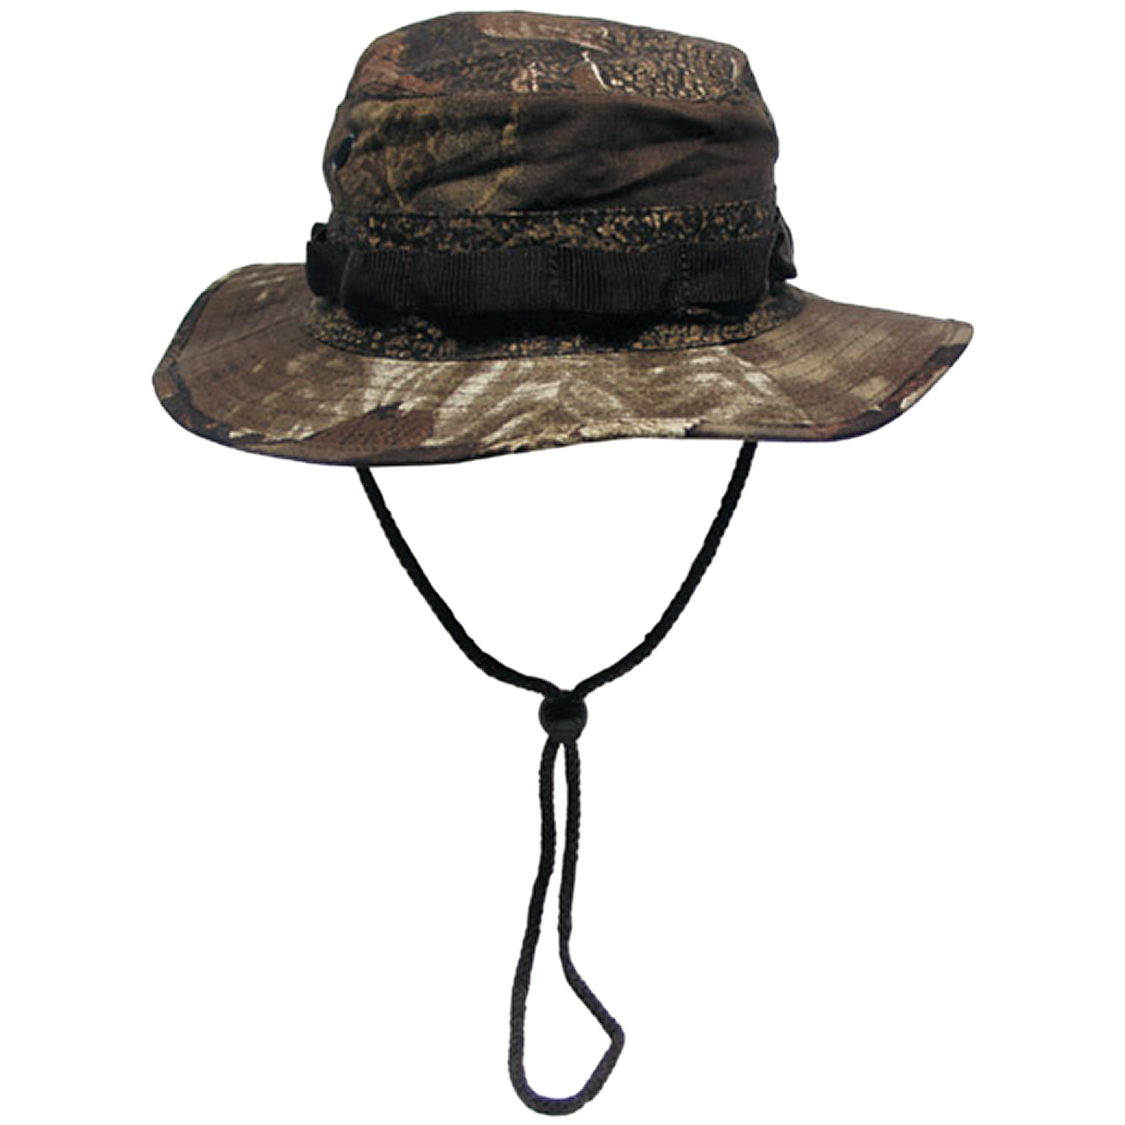 Details about US GI Ripstop Bush Boonie Hat Army Fishing Hunter Cap Real  Tree Brown Camo S-XL 41cbf76c0a2